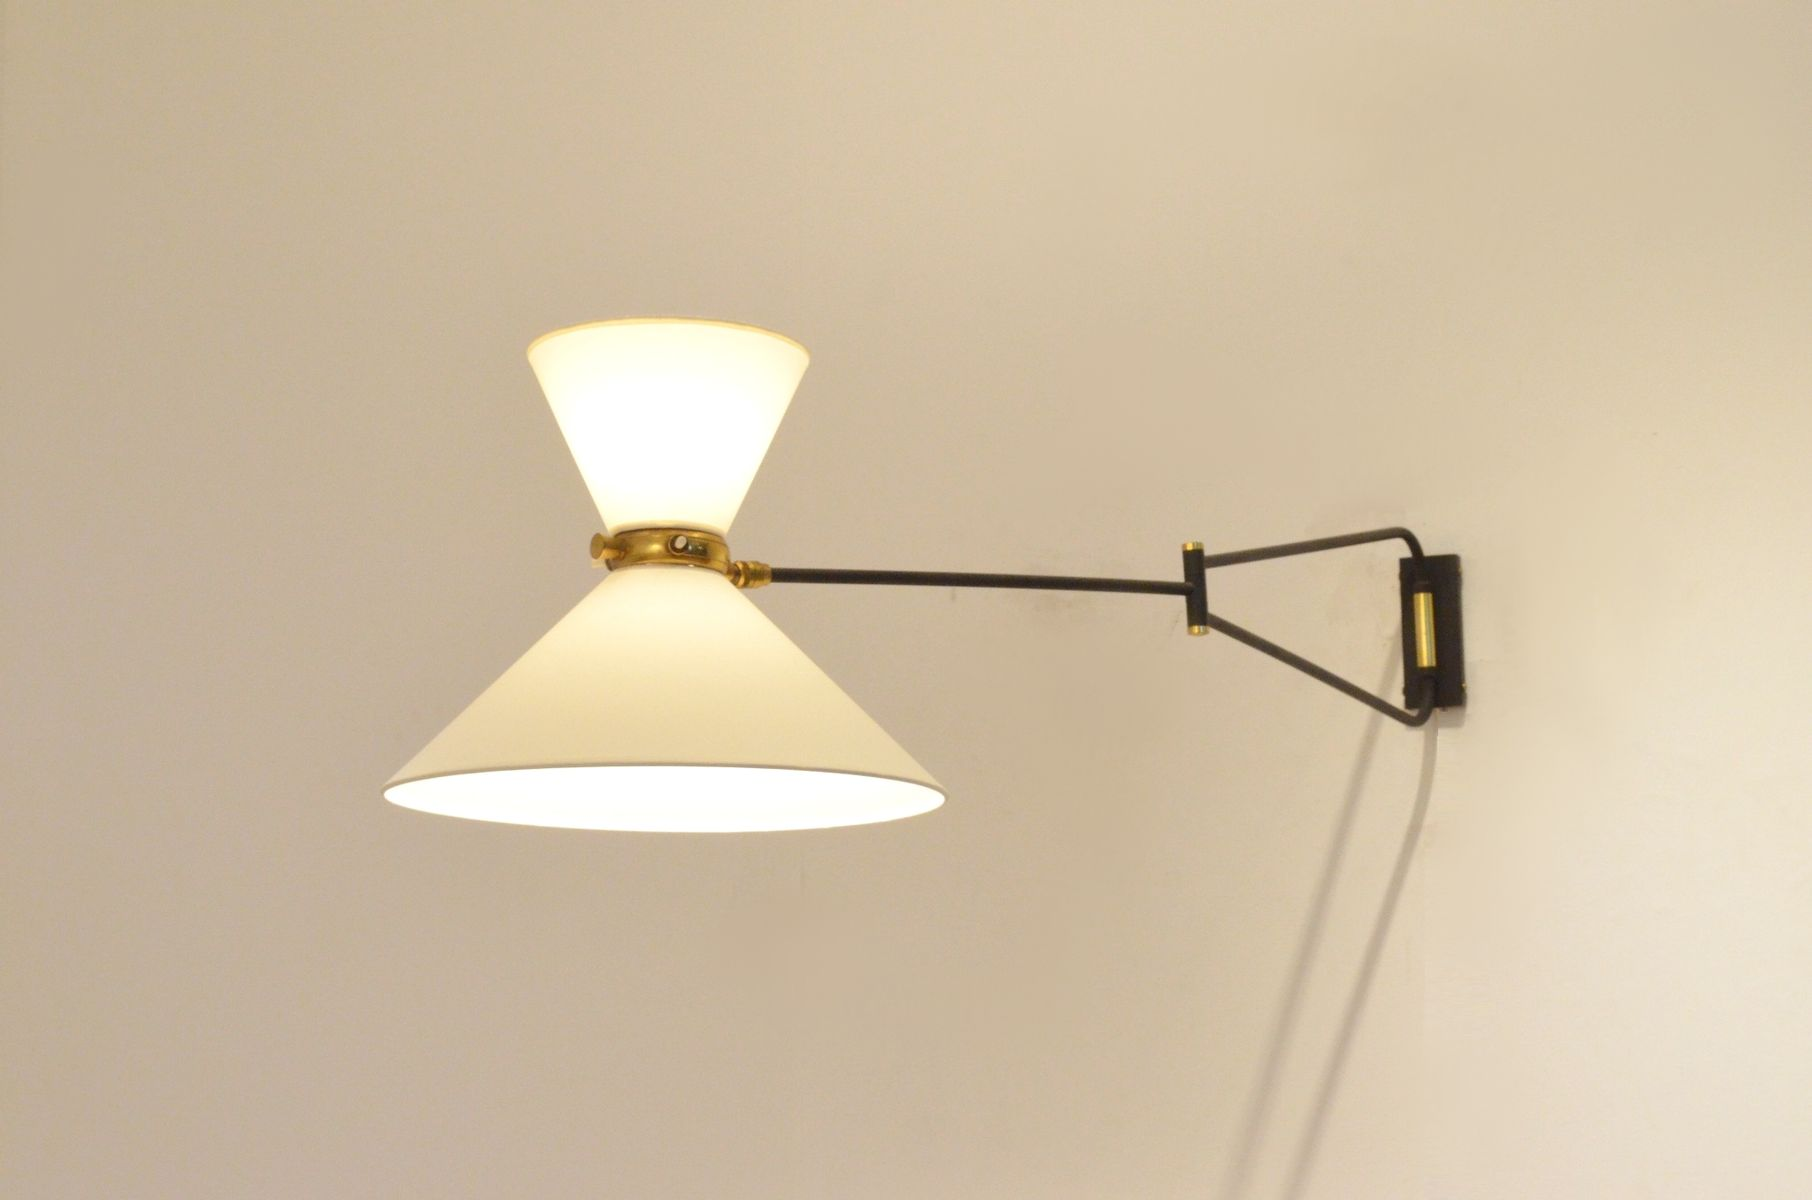 Wall Mounted Articulated Lamp : Large French Mid-Century Articulated Wall Lamp from Lunel for sale at Pamono